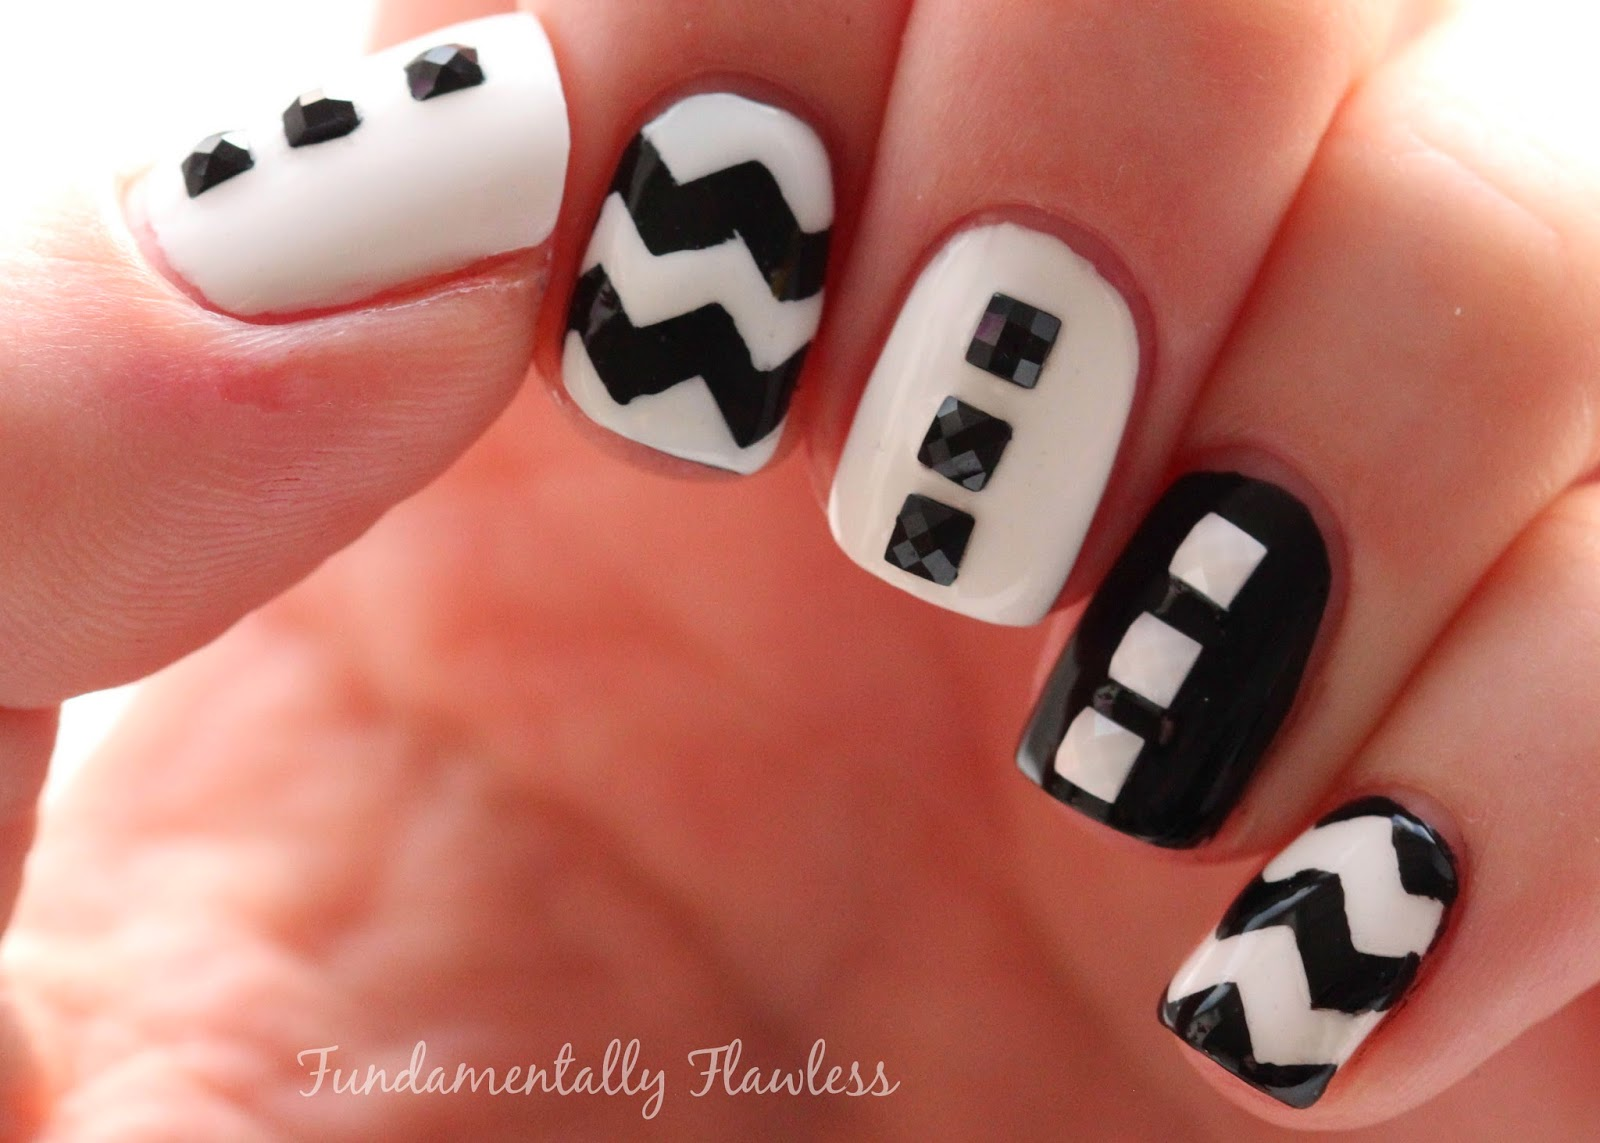 Fundamentally flawless born pretty store mini black and white born pretty store mini black and white nail art studs review prinsesfo Images